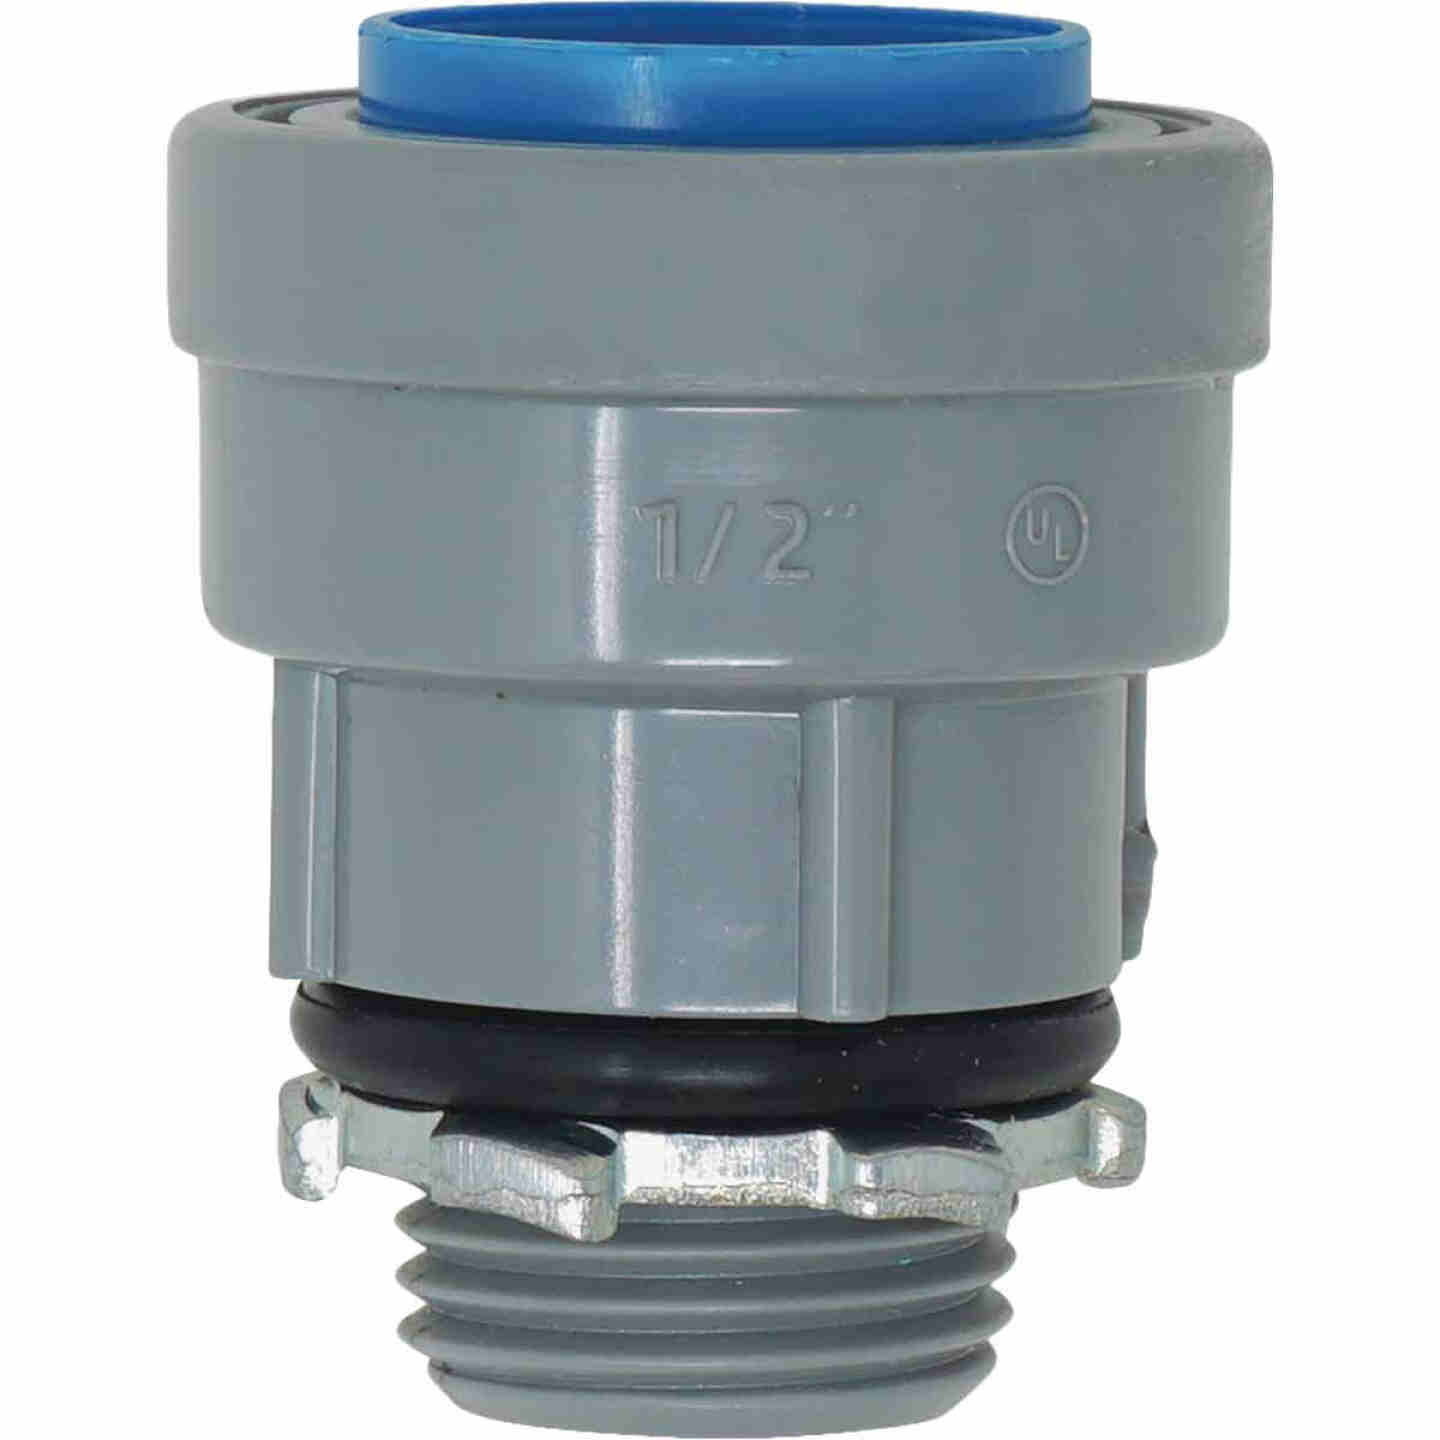 Southwire SimPush 3/4 In. PVC-CIC Push-To-Install Conduit Male Adapter Image 1